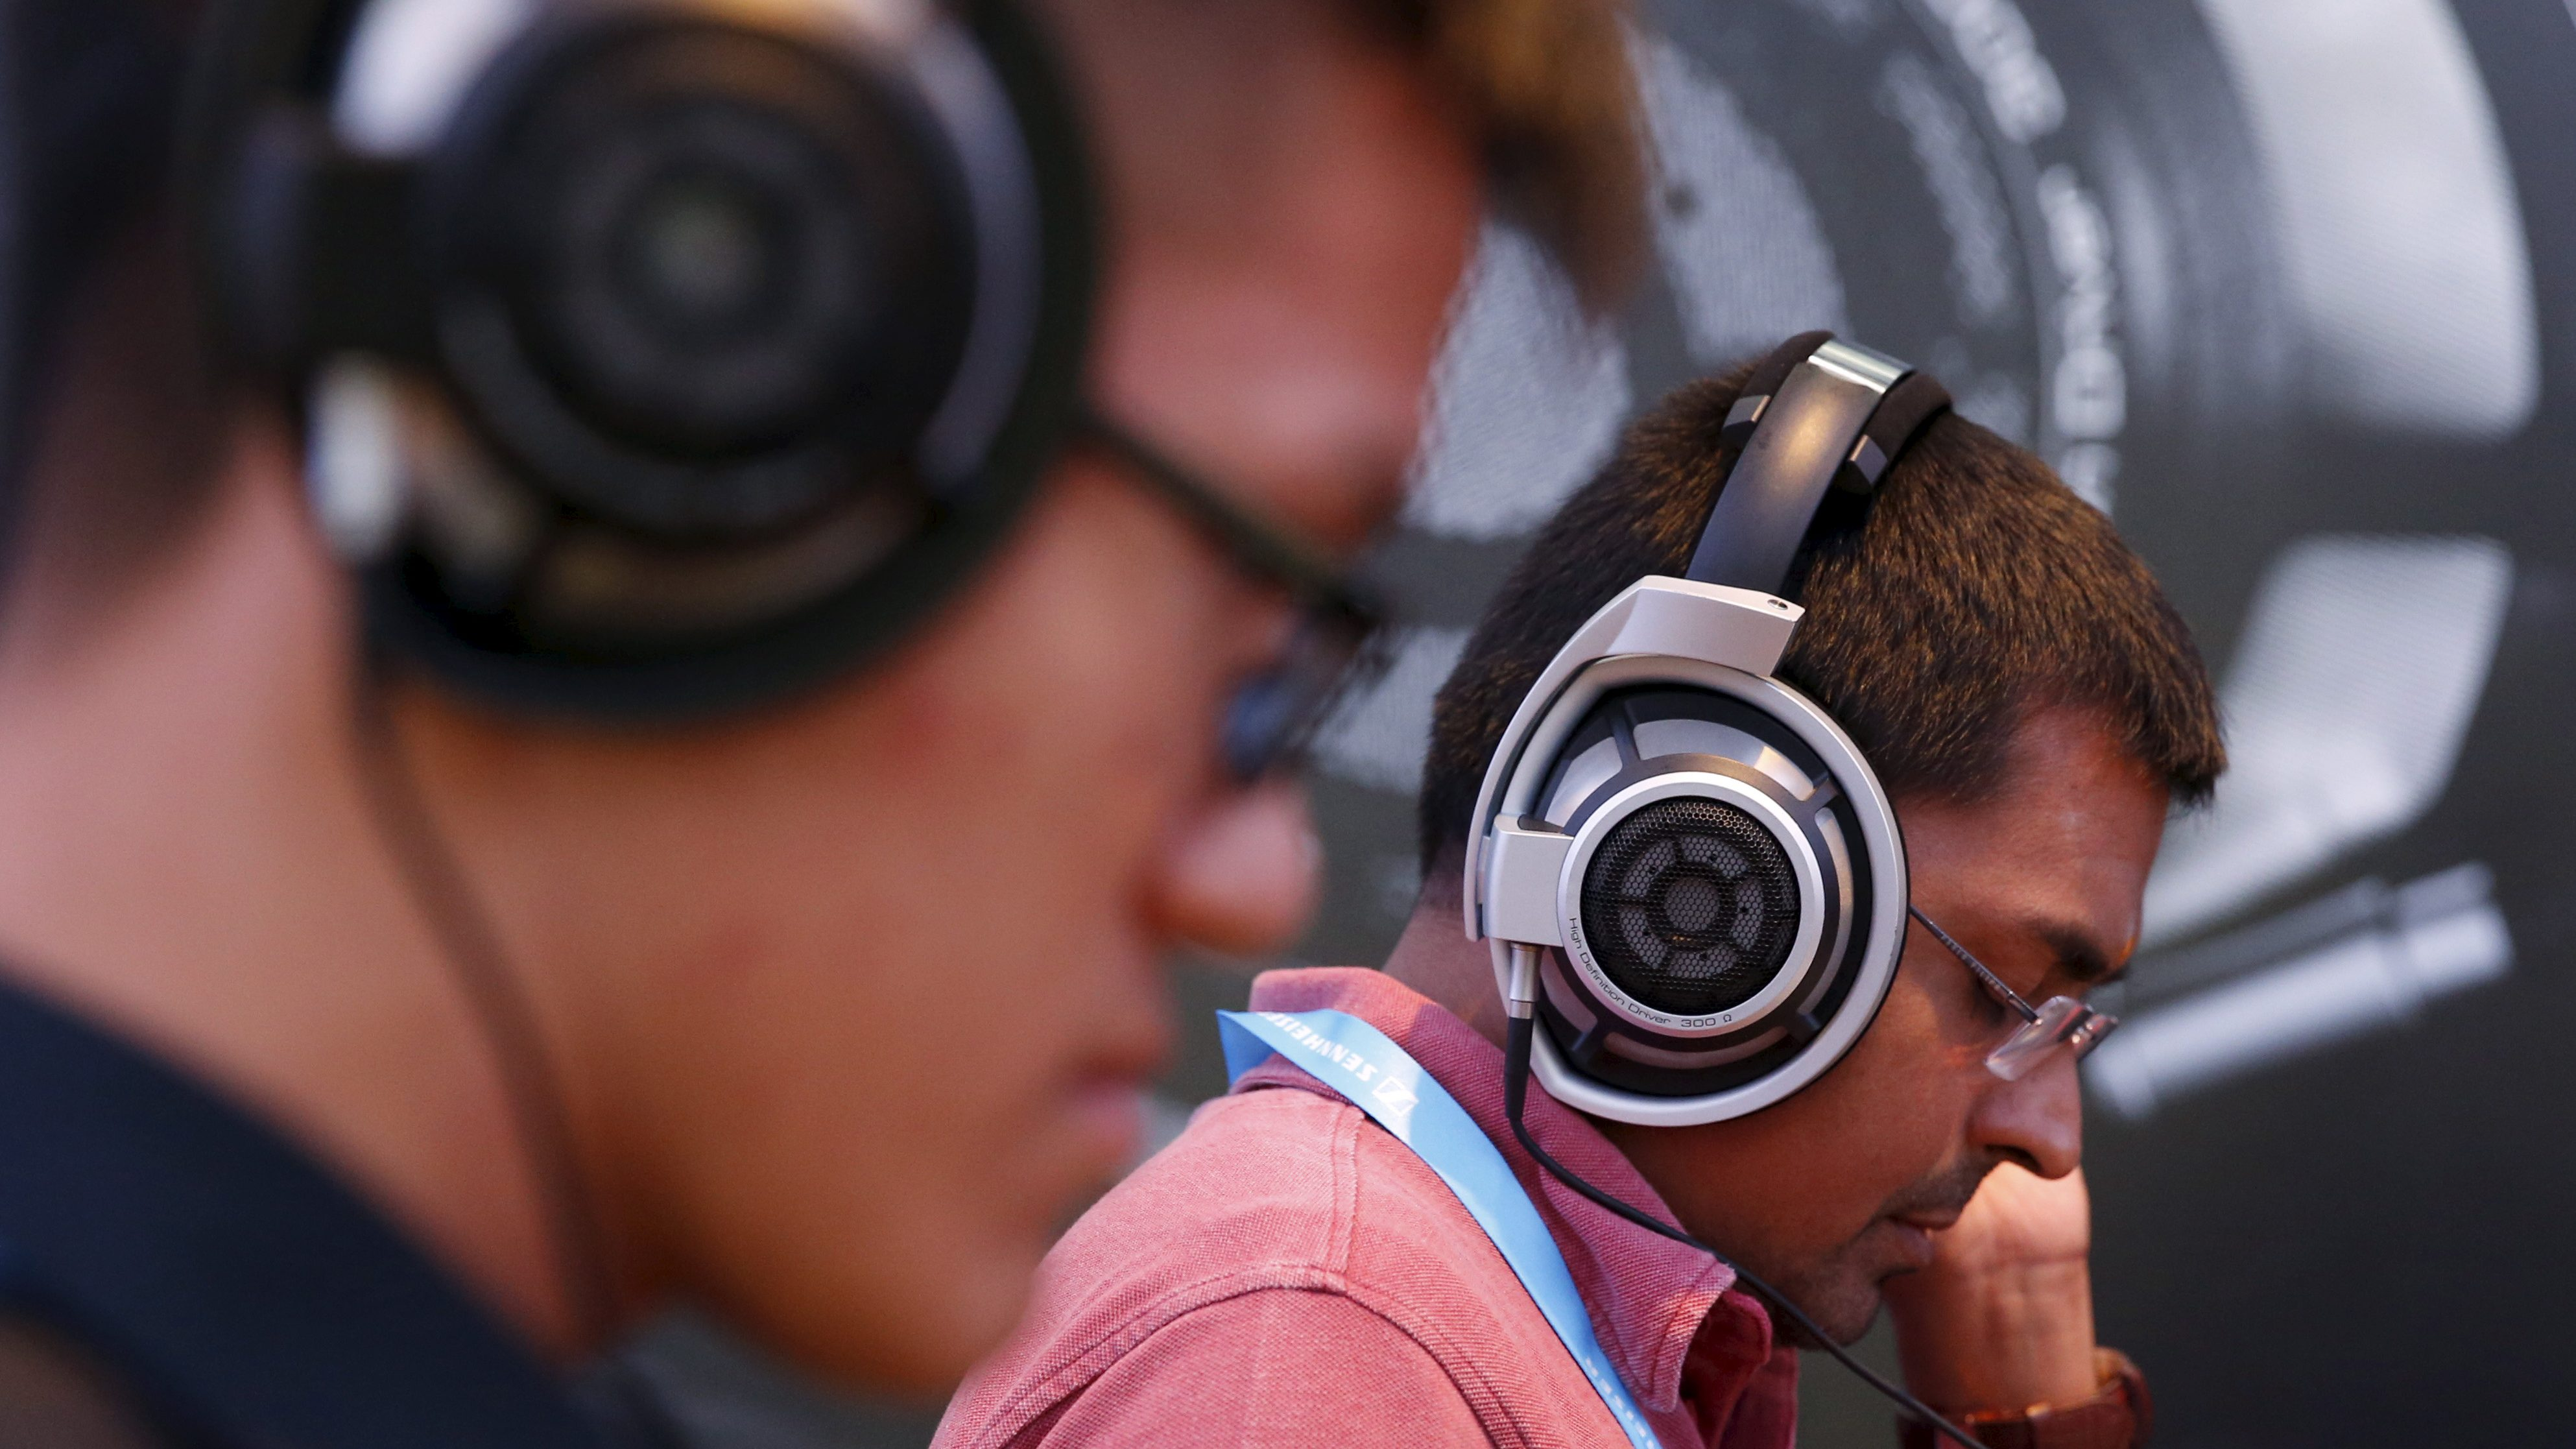 People test headphones during the CanJam headphone and personal audio expo in Singapore February 21, 2016.